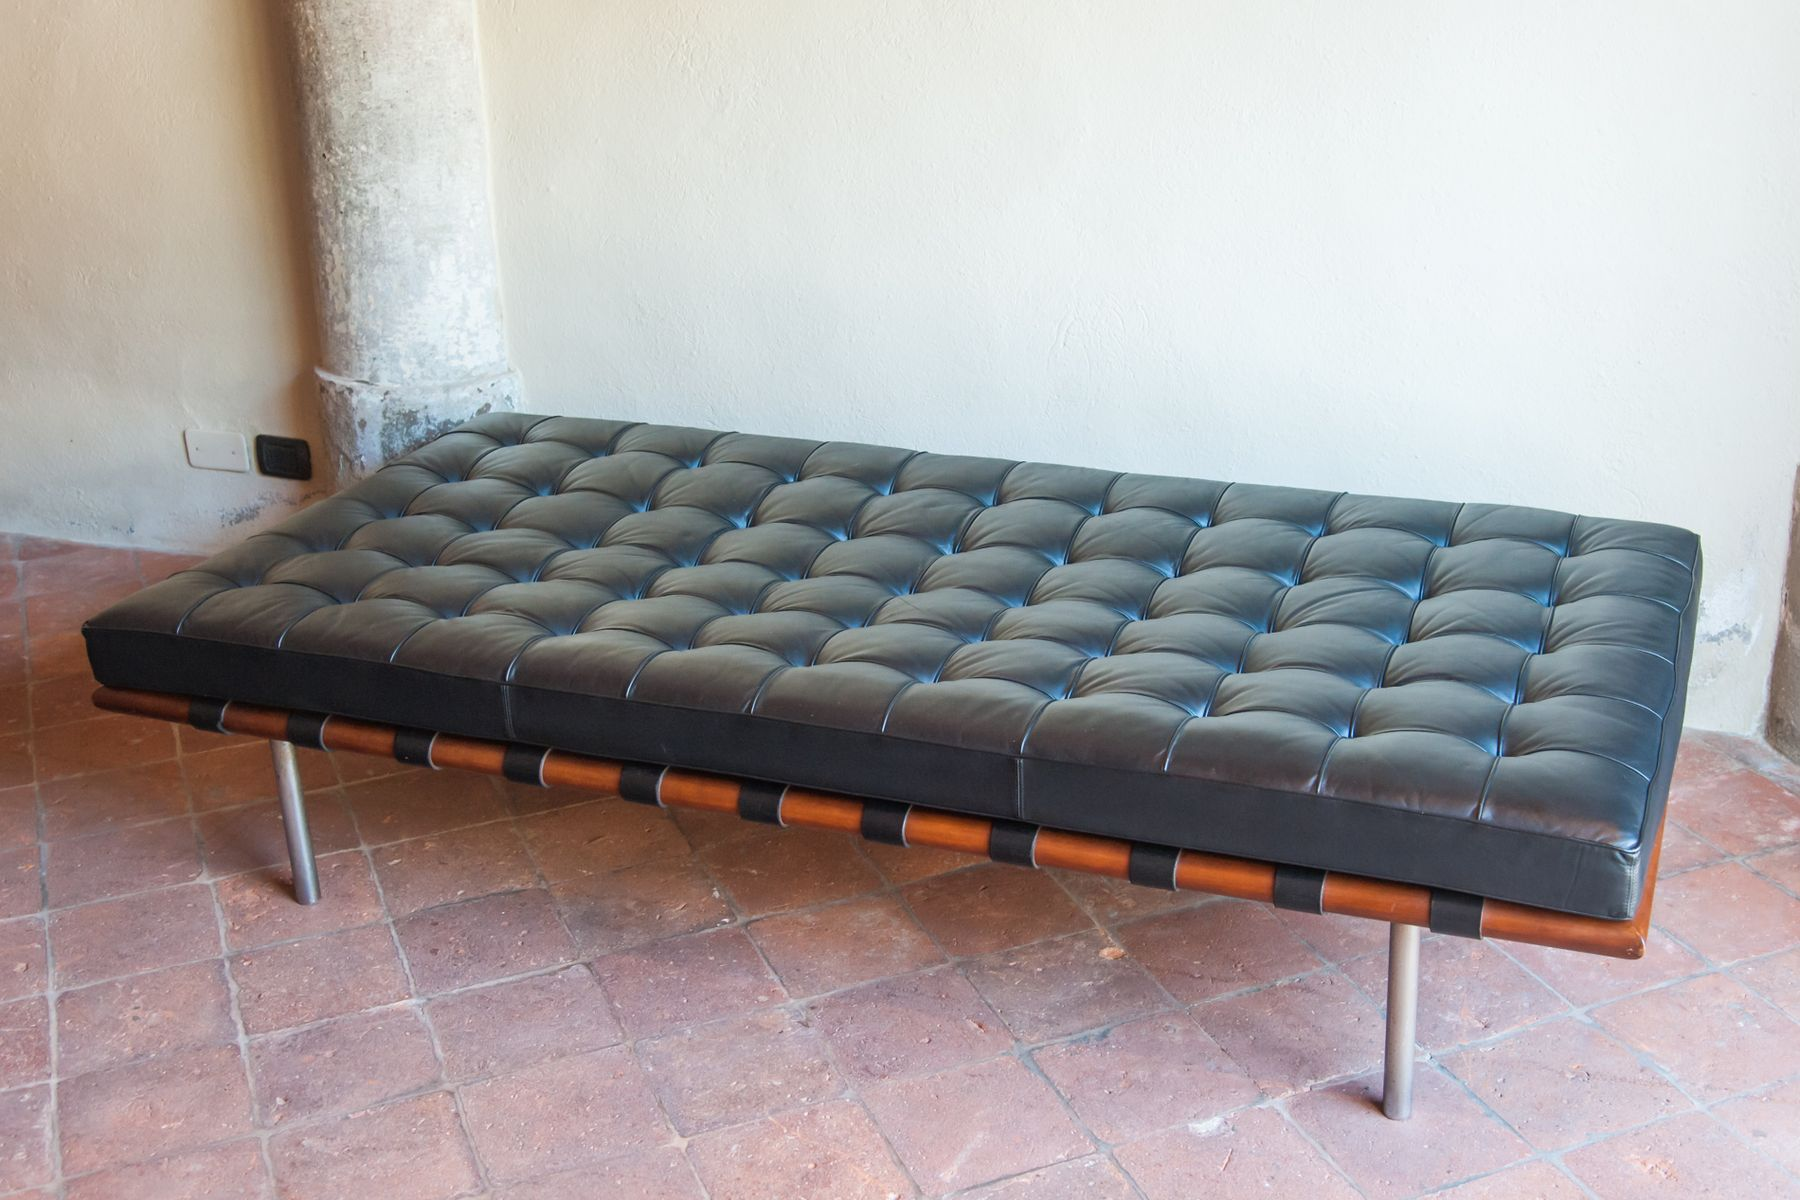 Vintage Daybed By Mies Van Der Rohe For Knoll For Sale At